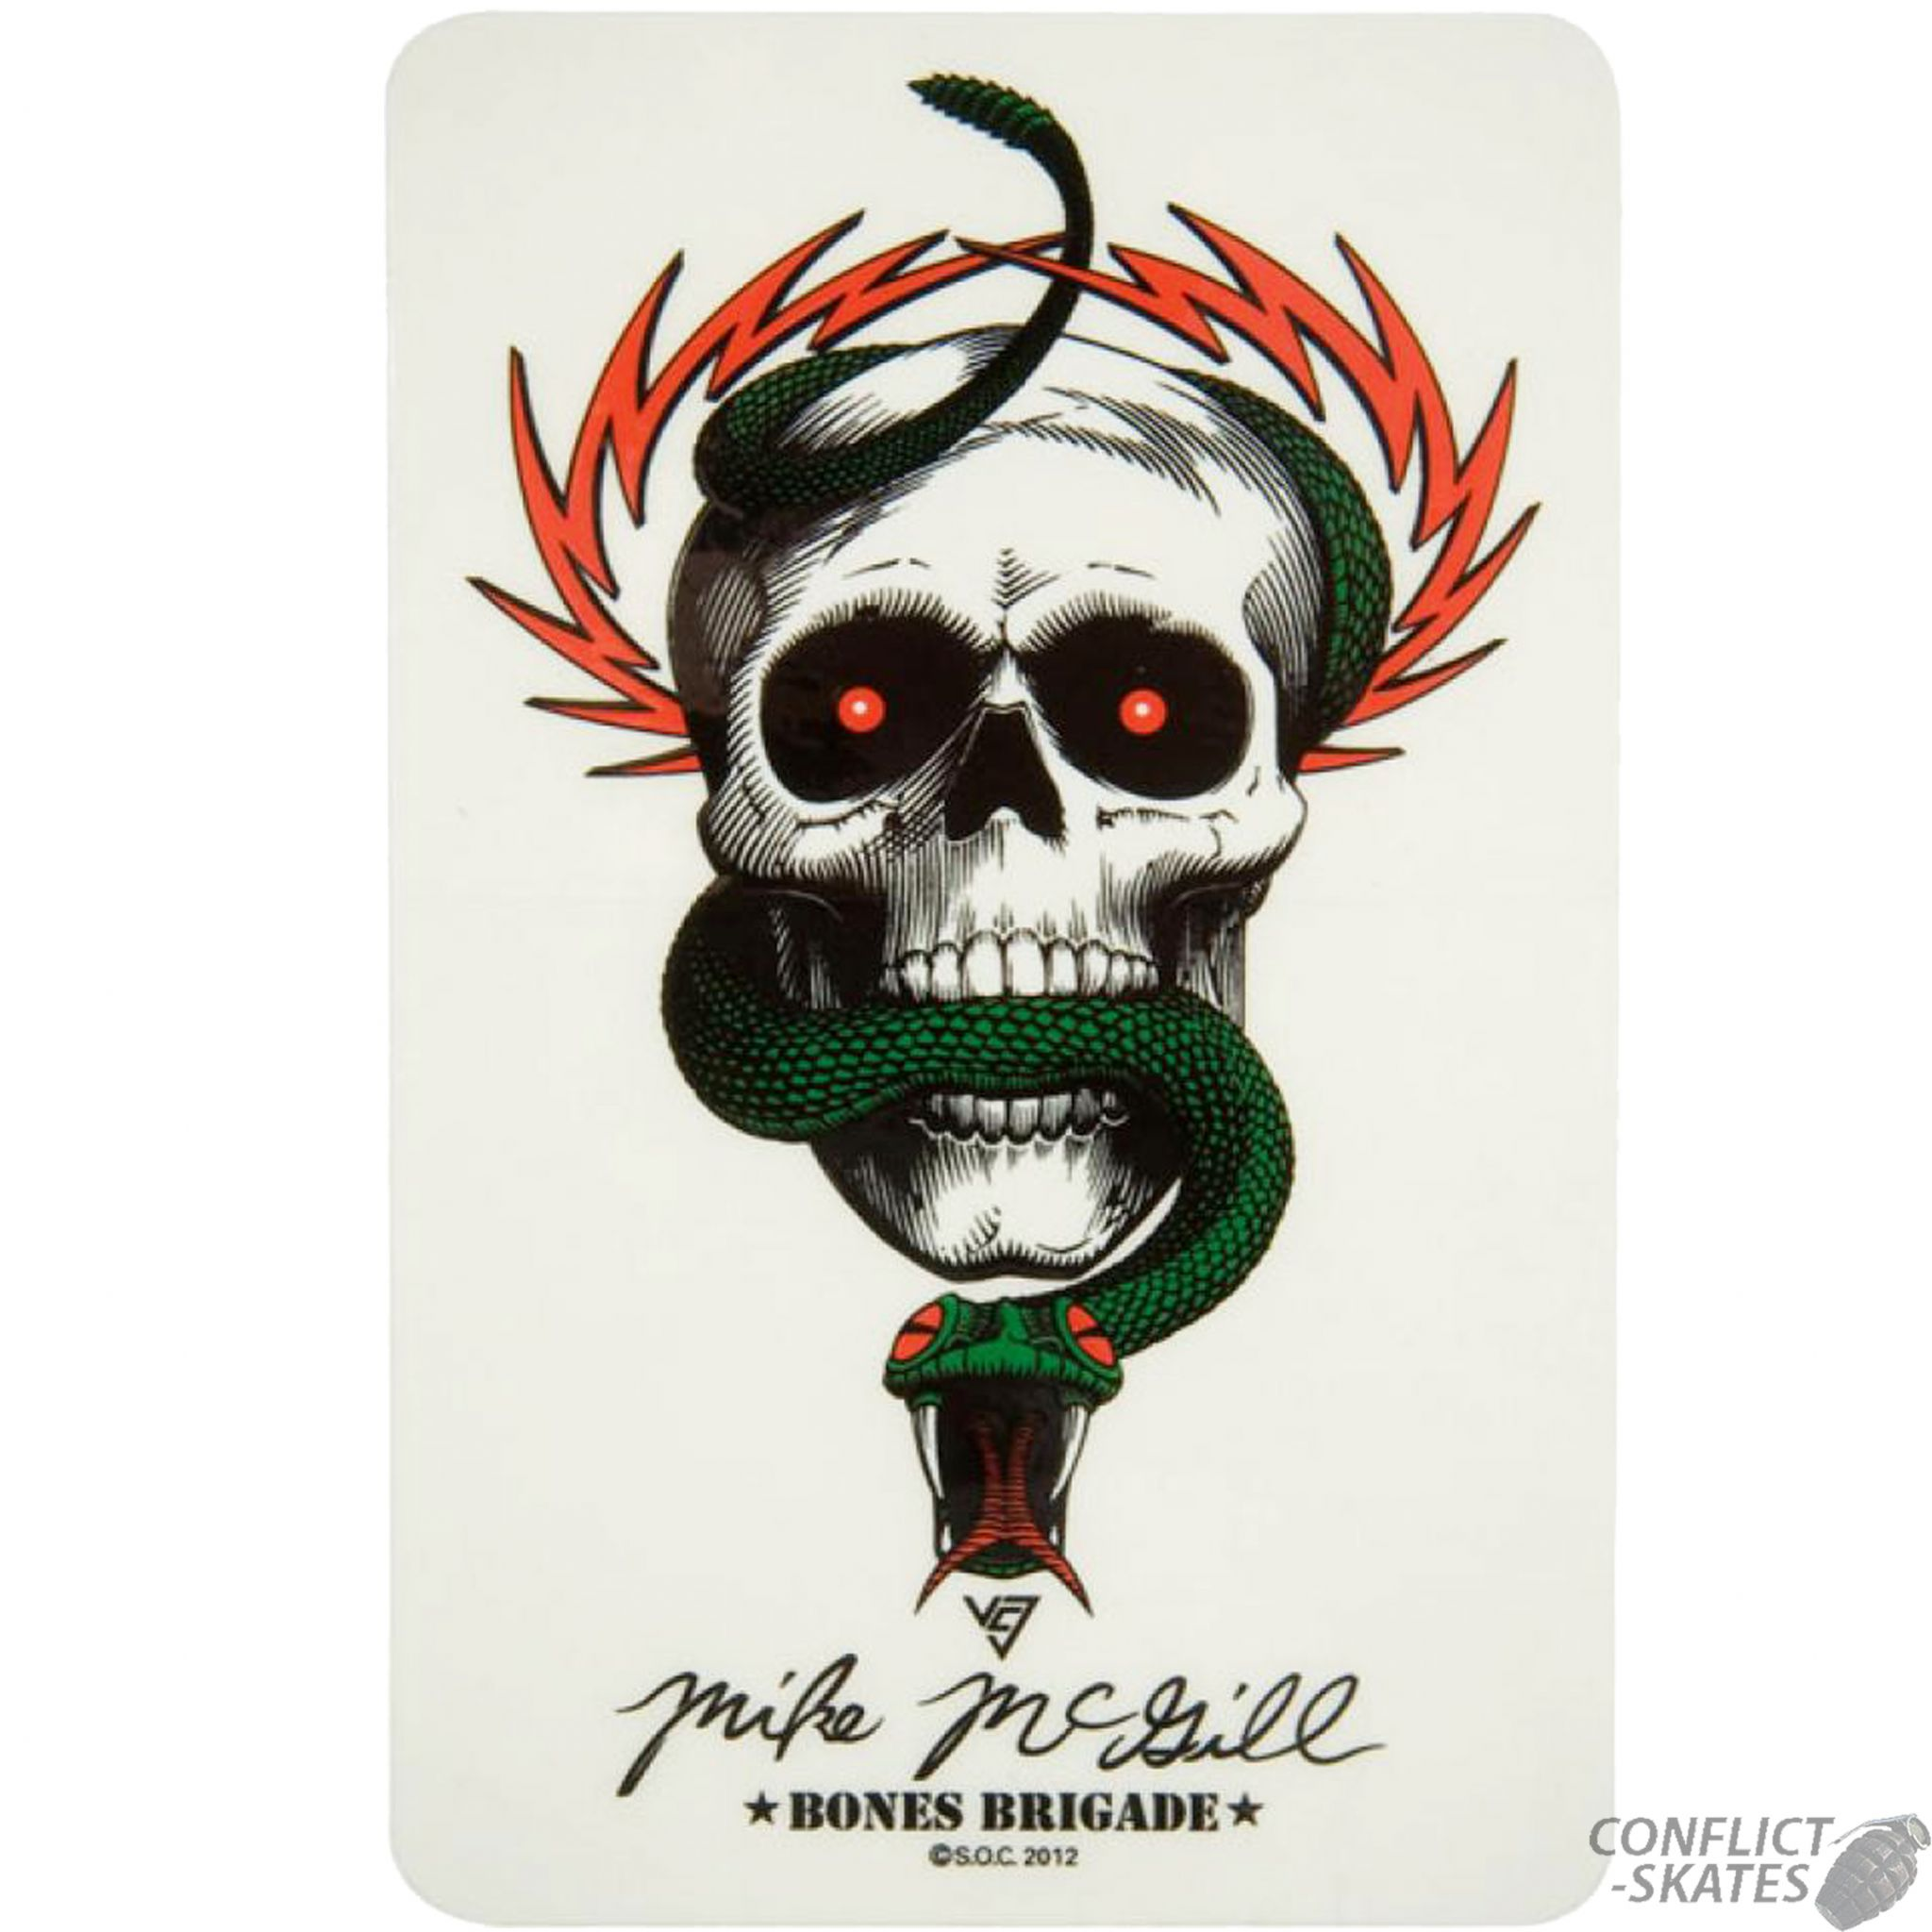 Powell Peralta Skull Amp Snake Mcgill Skateboard Sticker